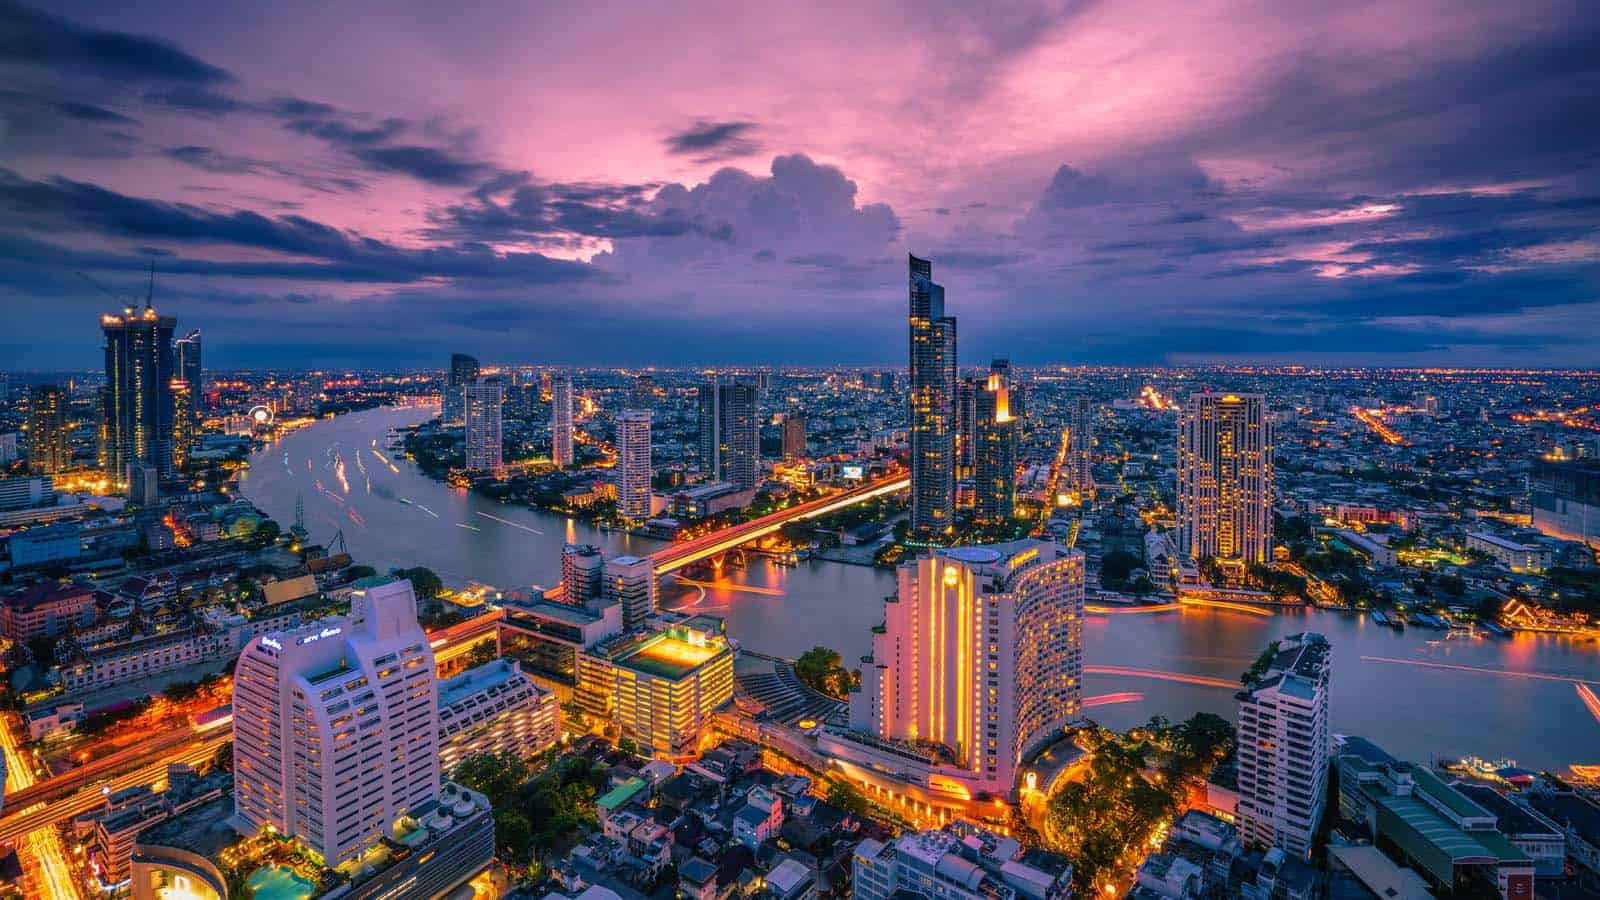 Bangkok by night.